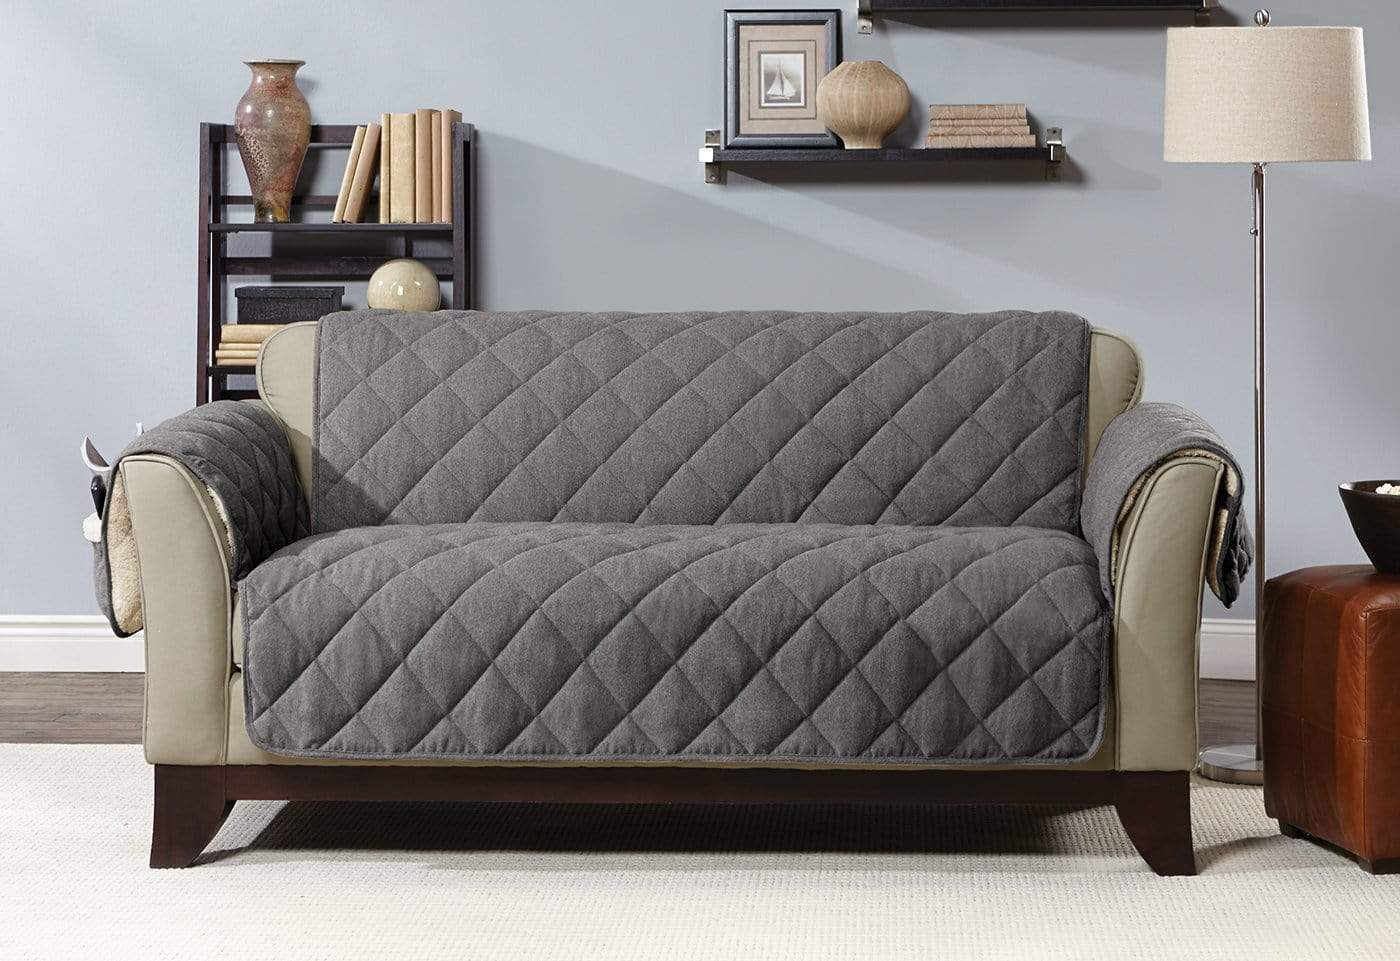 Flannel & Sherpa Loveseat Furniture Cover